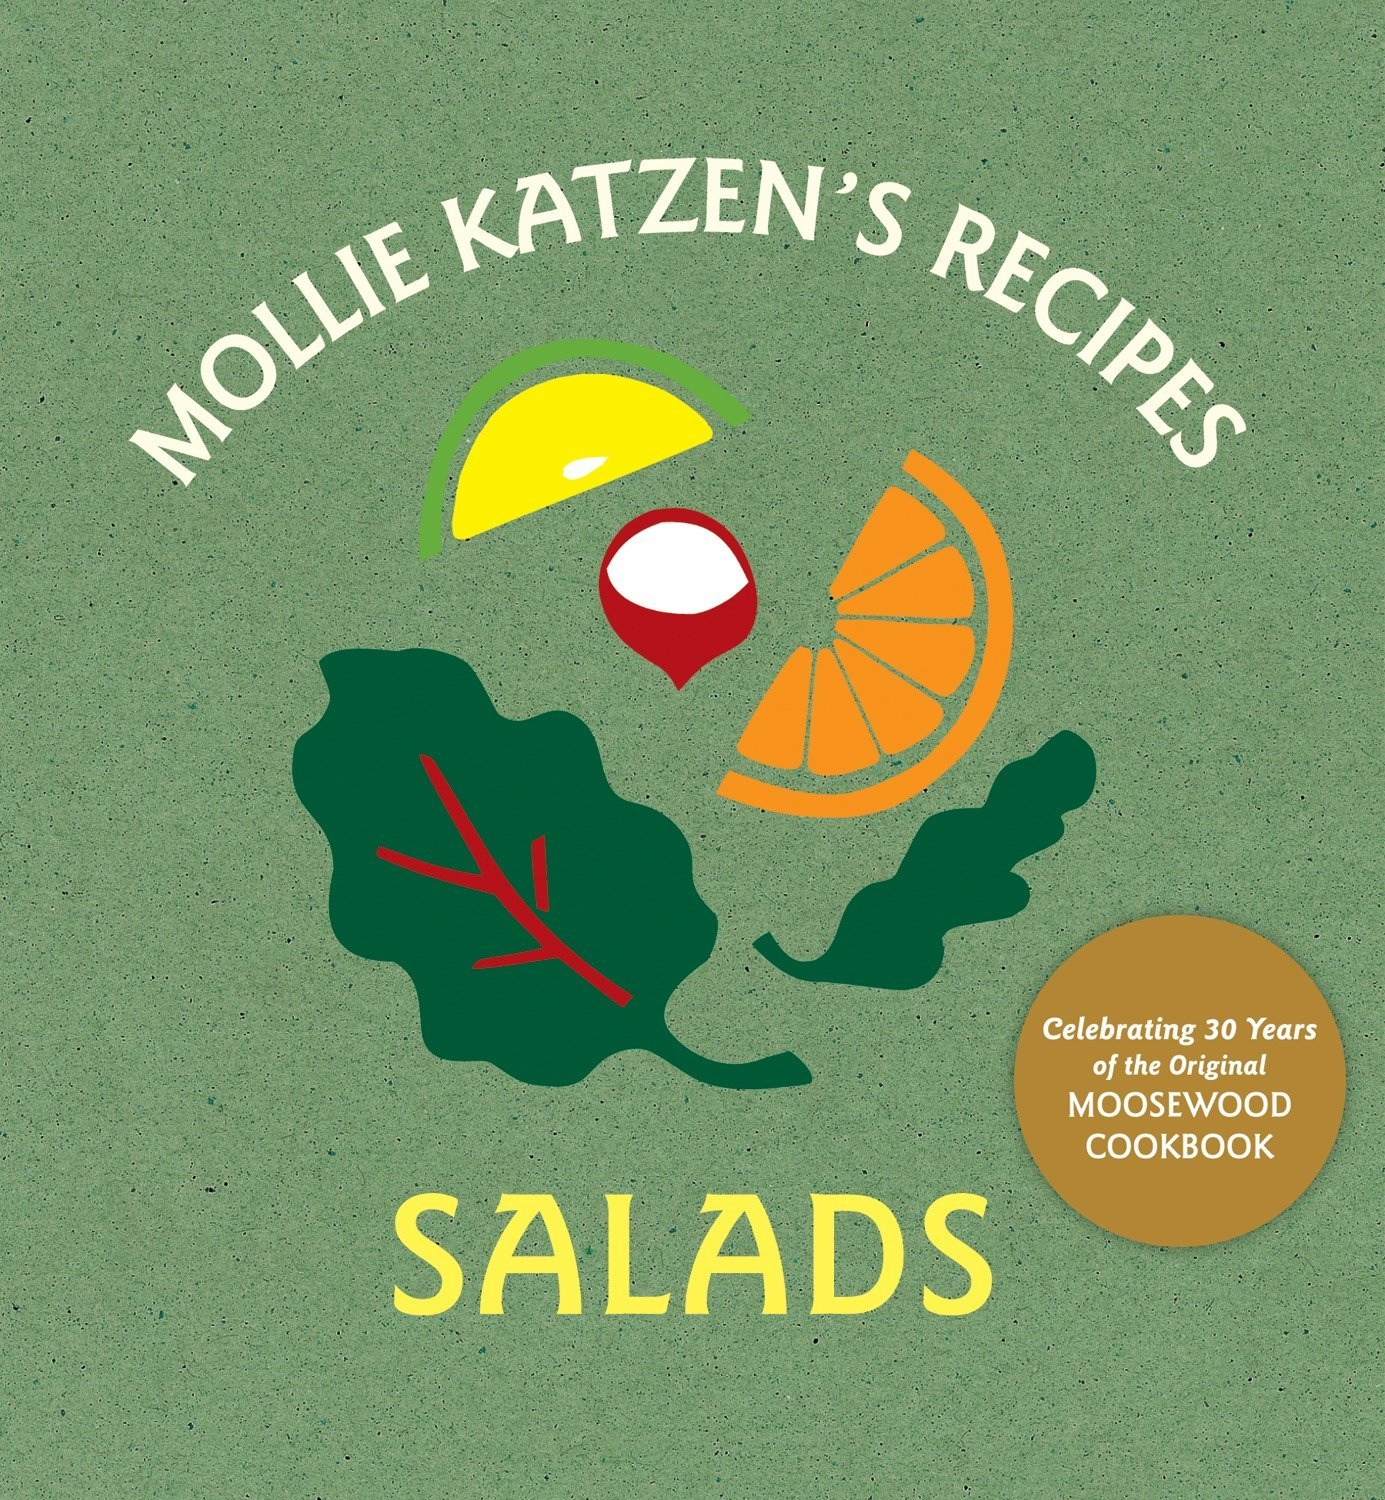 Read Online Mollie Katzen's Recipes   Salads PDF